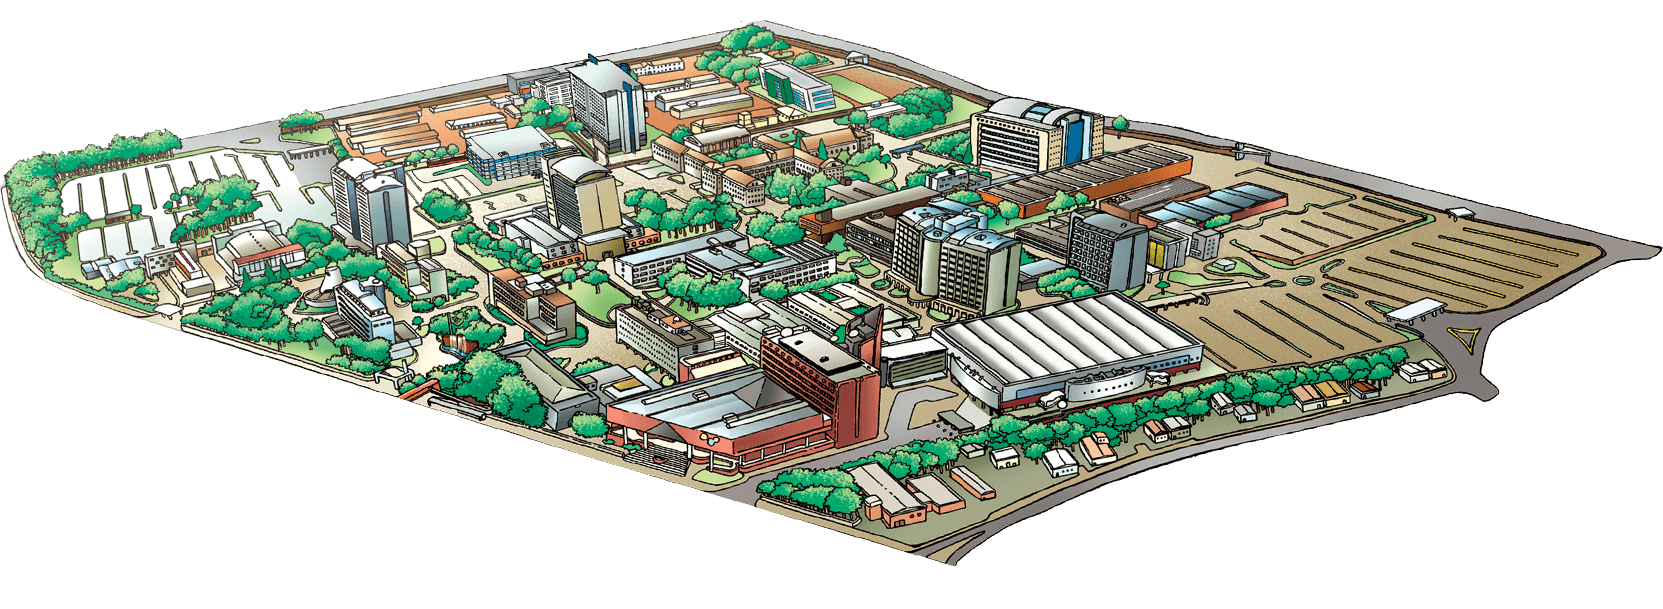 Mapa do Campus da PUCRS